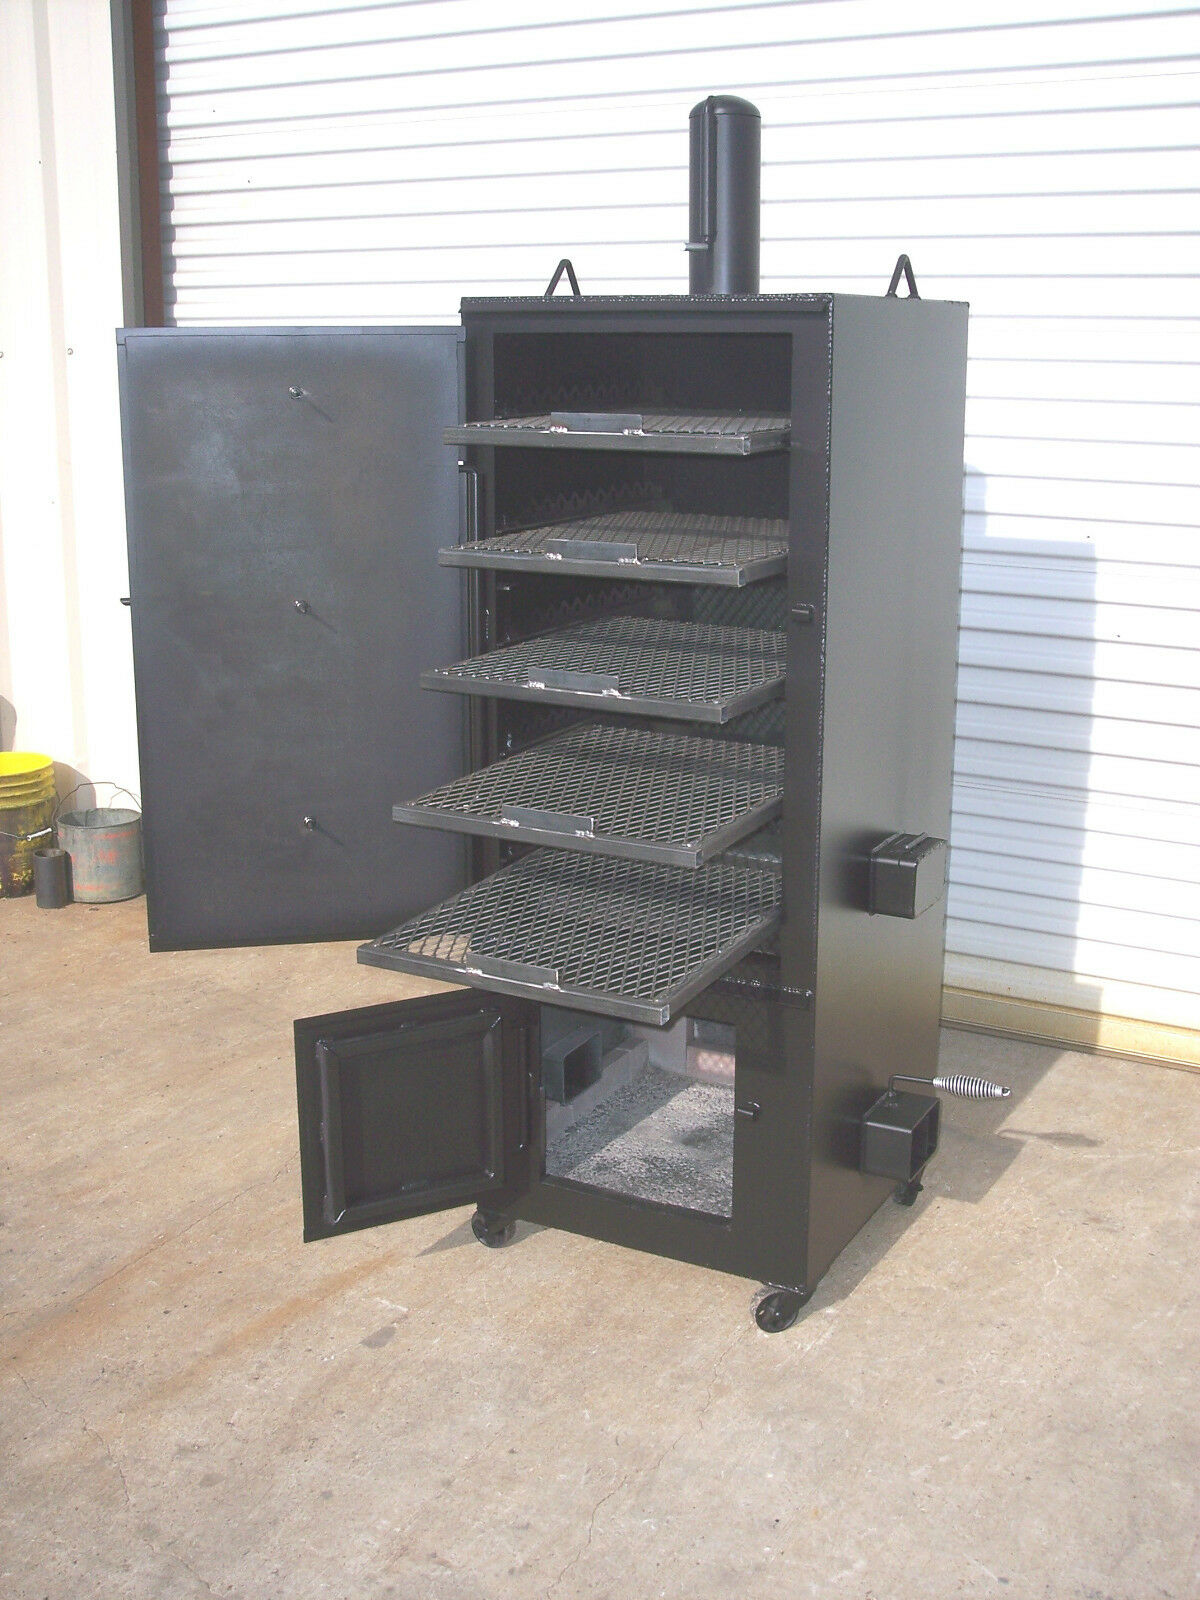 new custom vertical patio bbq pit smoker and charcoal grill model 2x2. Black Bedroom Furniture Sets. Home Design Ideas